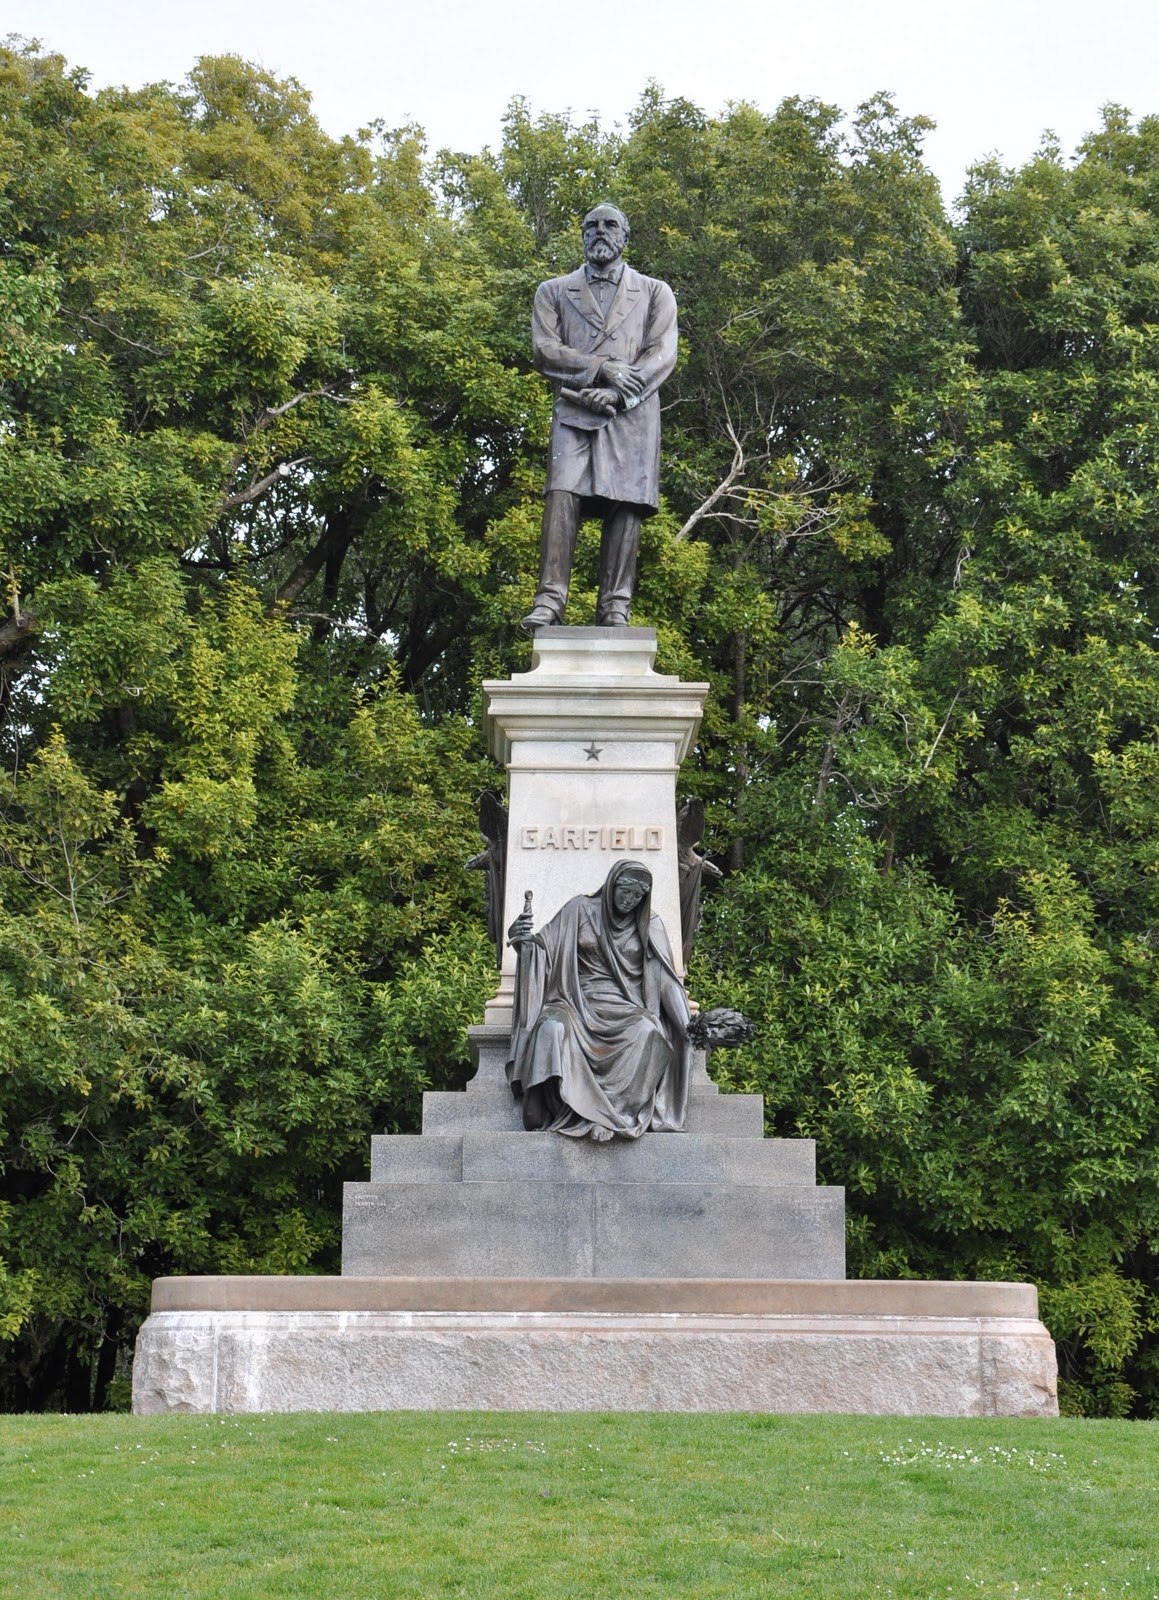 Golden Gate Park - James Garfield - Public Art and ...